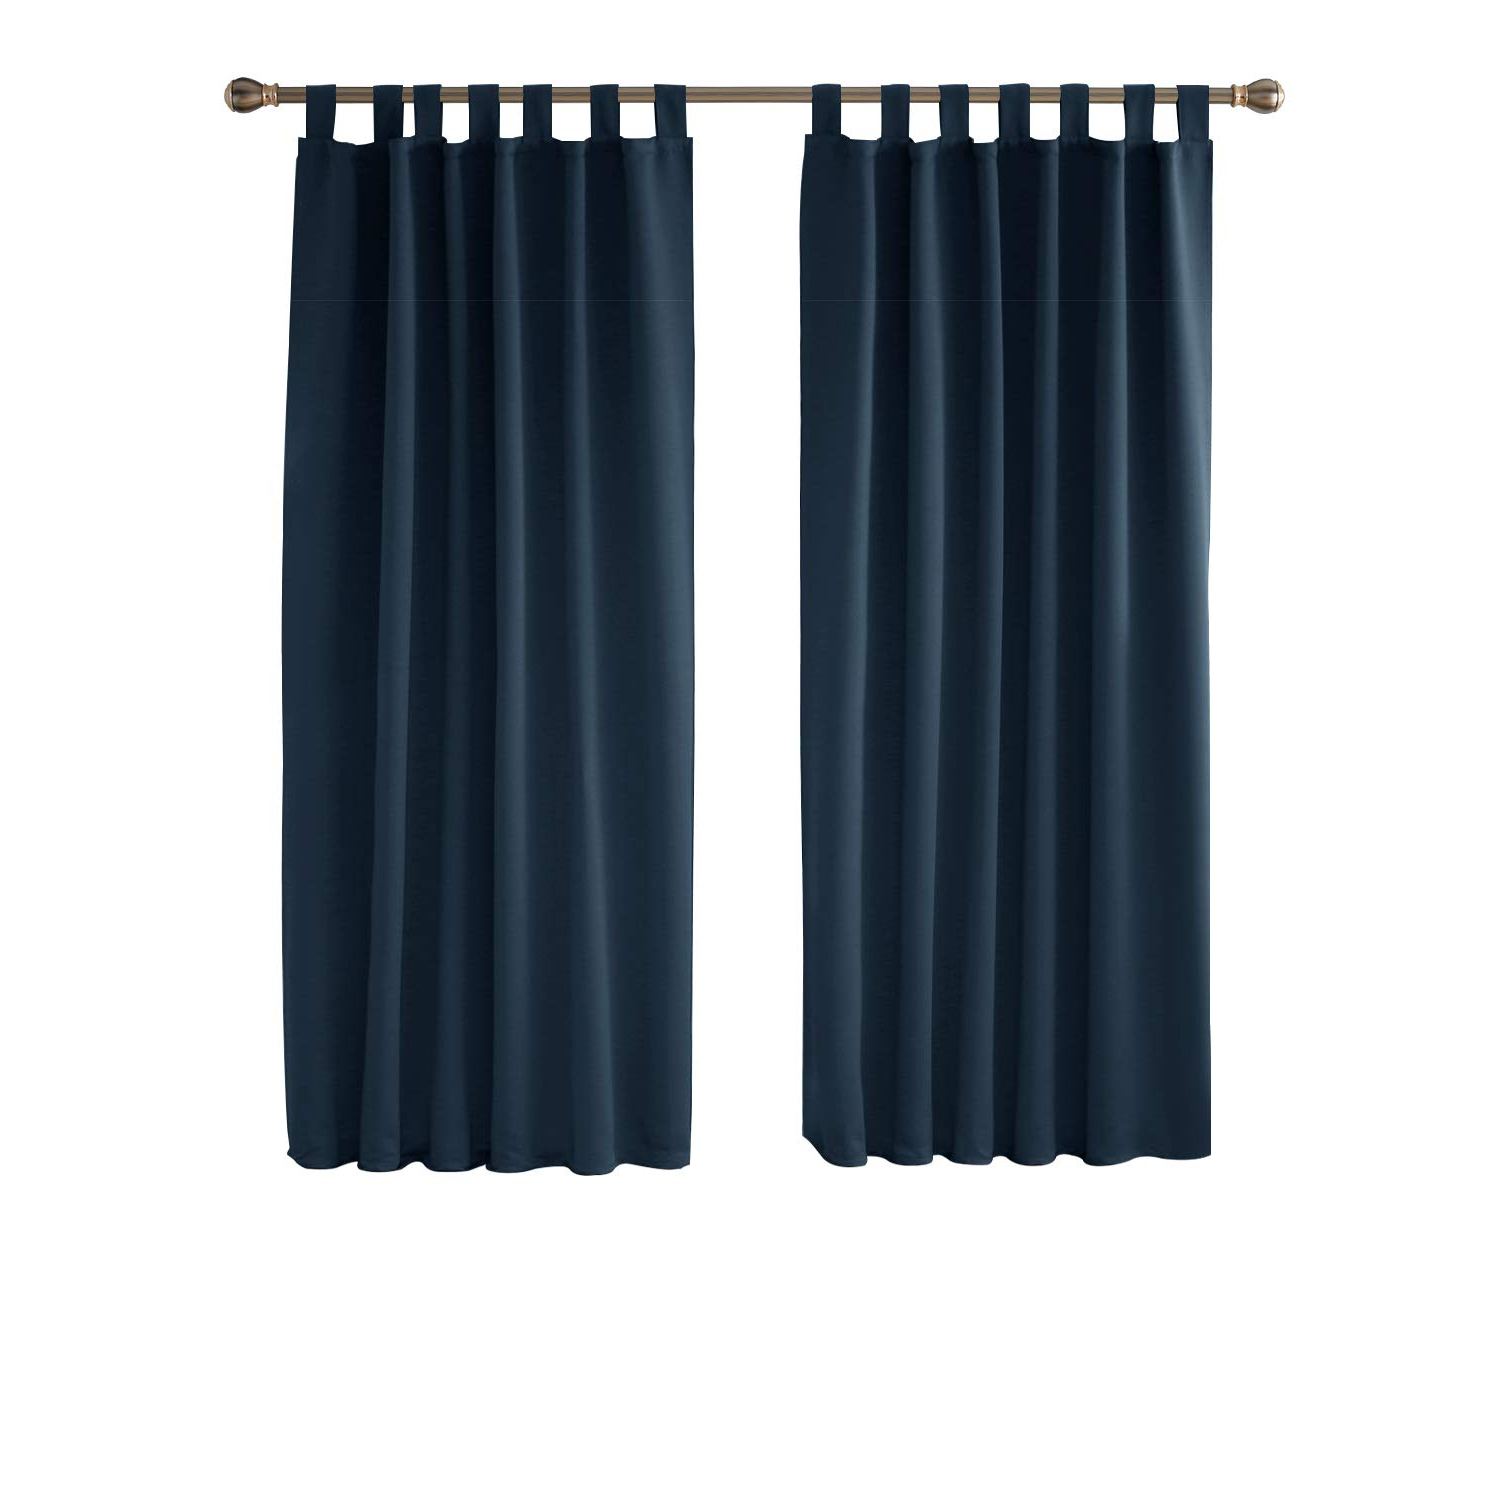 Urgent Tab Top Curtains Deconovo Soft Solid Thermal Regarding Most Up To Date Solid Thermal Insulated Blackout Curtain Panel Pairs (View 17 of 20)